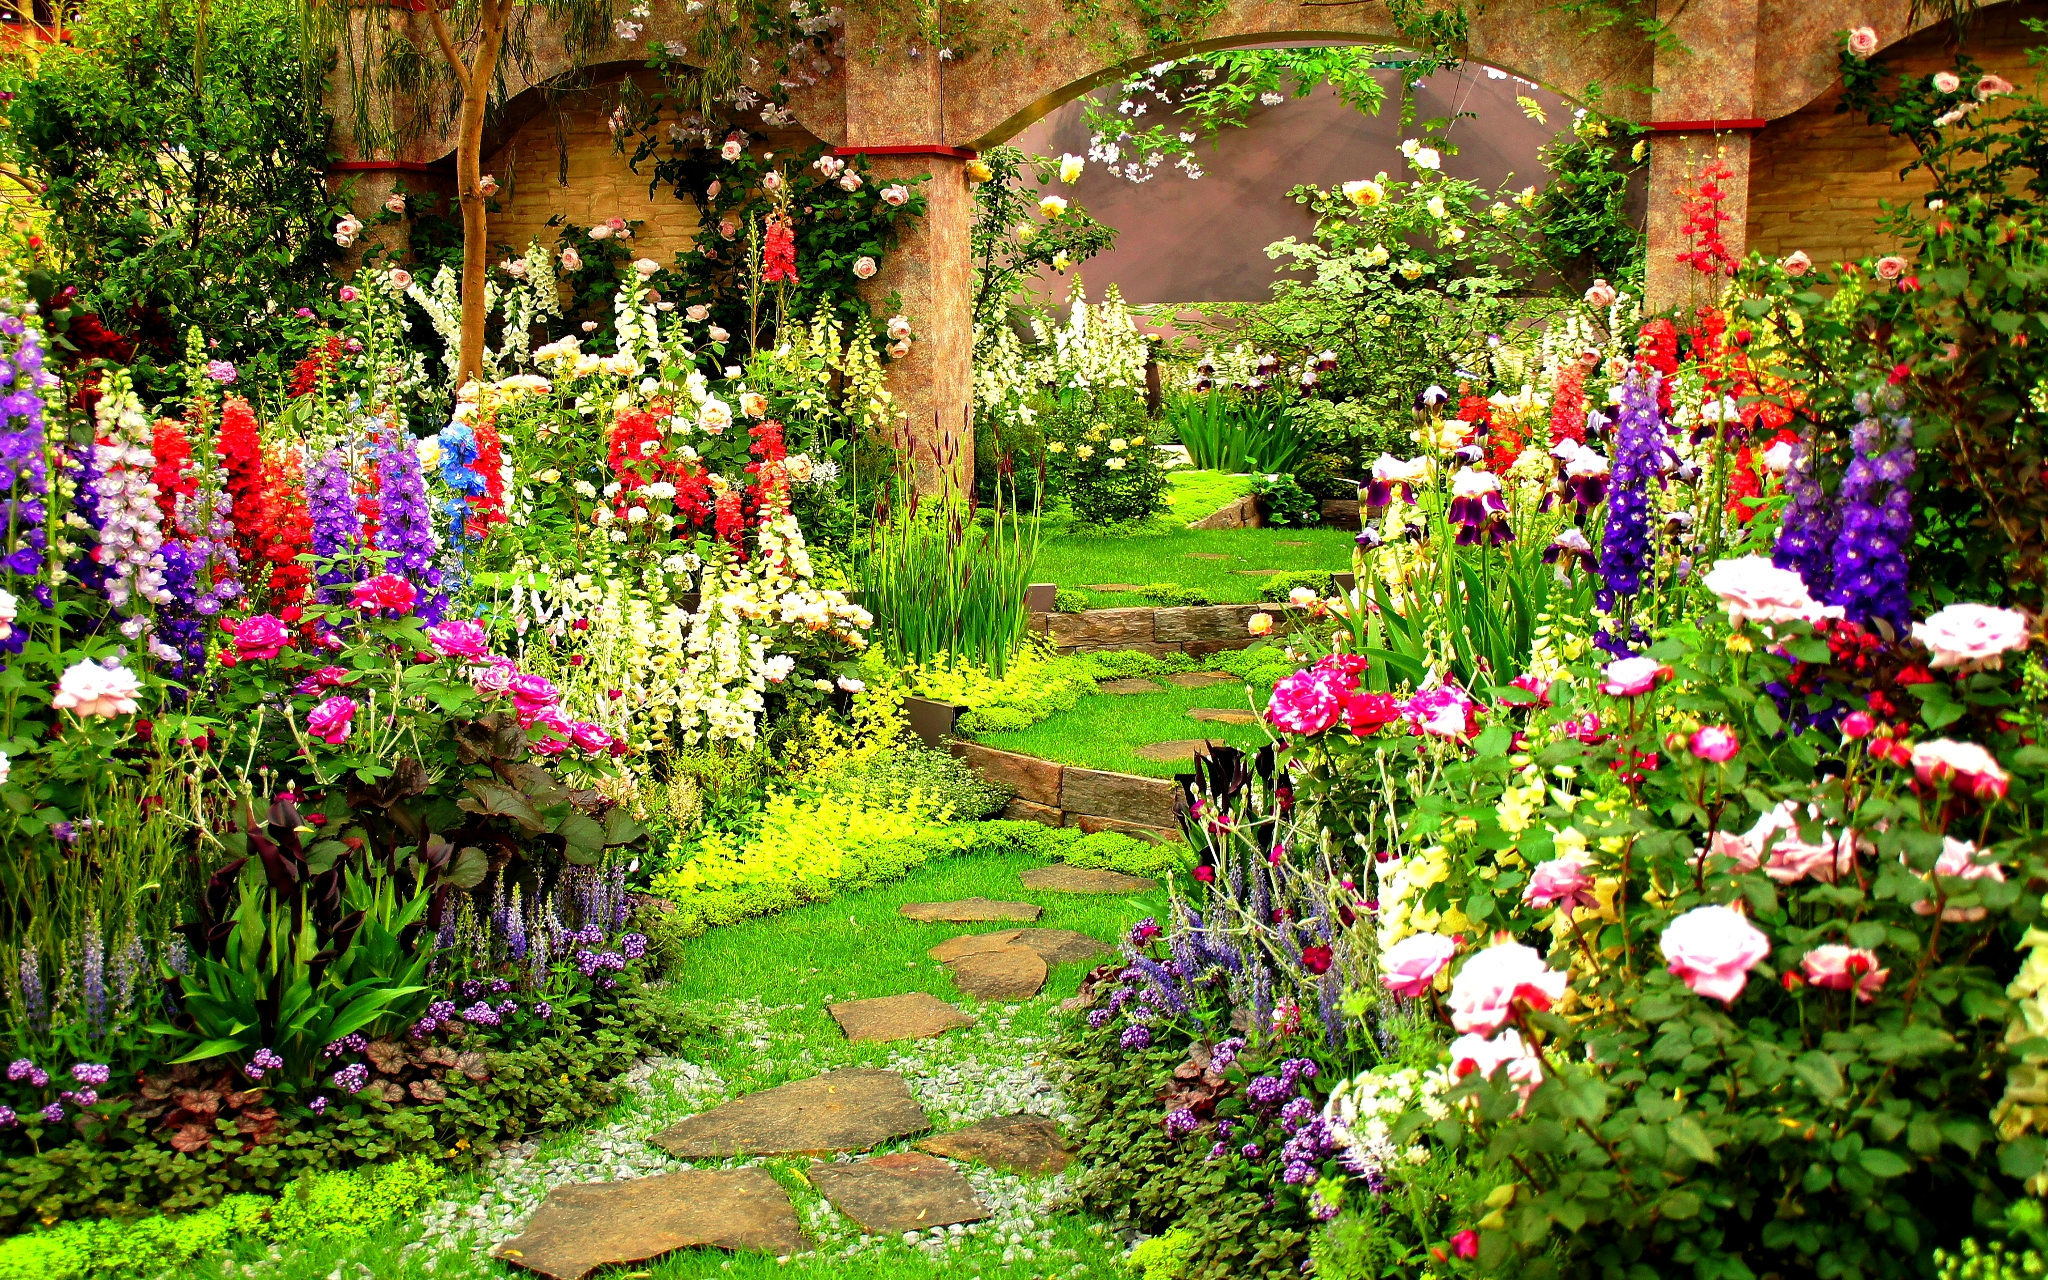 Spring Flower Gardens Wallpaper